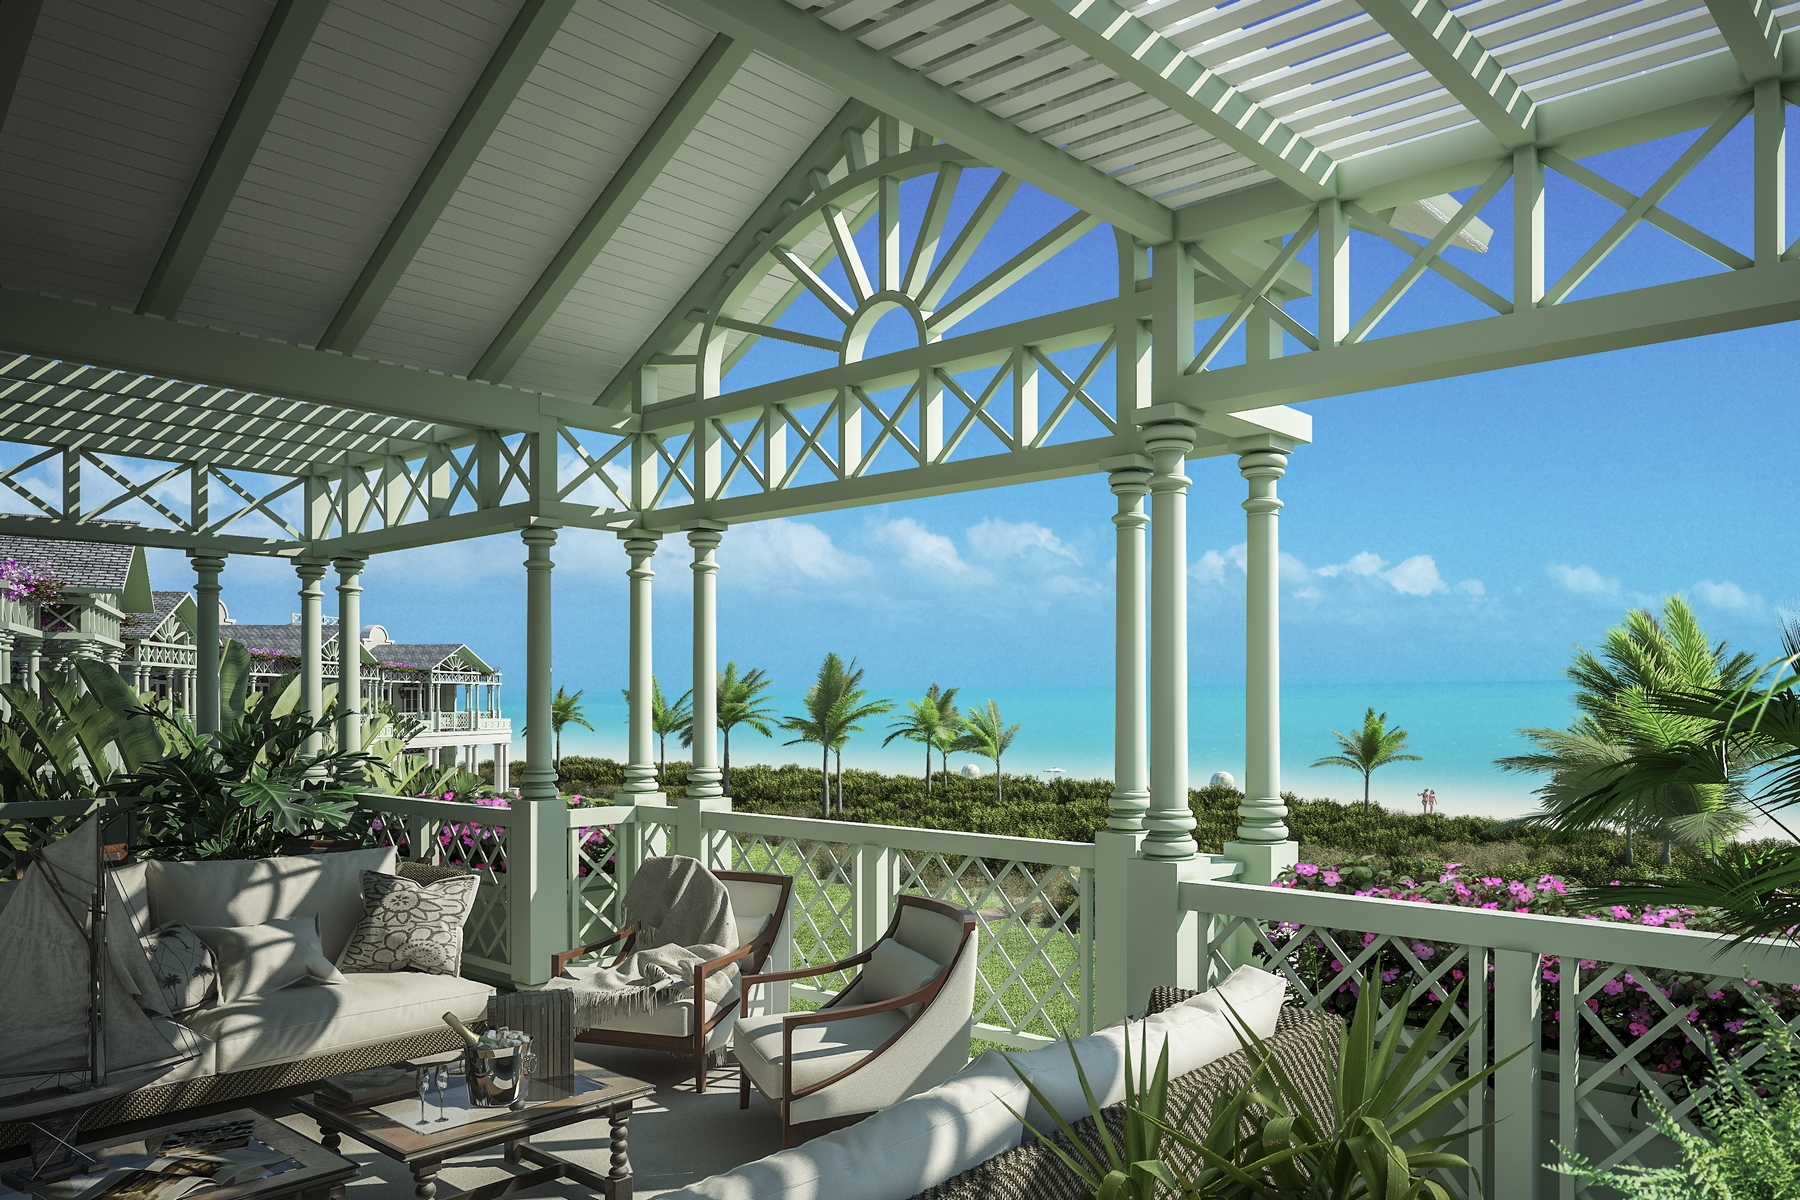 Casa Unifamiliar por un Venta en The Shore Club ~ Villa 6 The Shore Club, Long Bay, Providenciales Islas Turcas Y Caicos